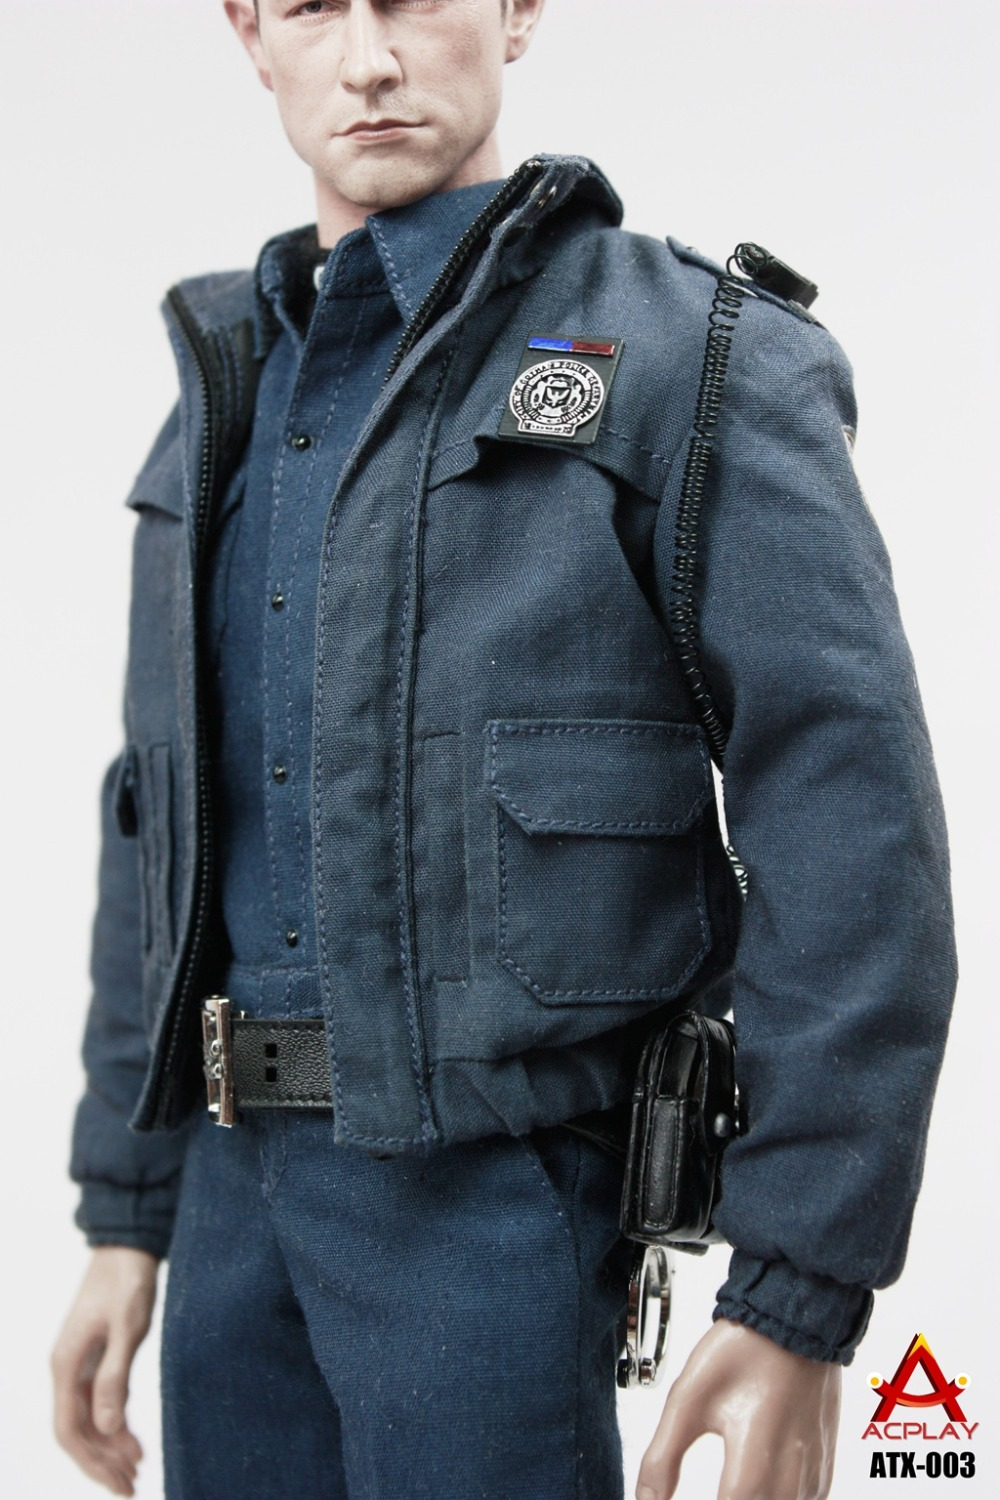 1/6 scale figure doll clothes for 12 Action figure doll accessories,Batman Gotham police Robin clothing.not include doll hot figures doll accessories pirp toys 1 6 batman police commissioner gordon inspector dresscode clothes set for 12 figure body